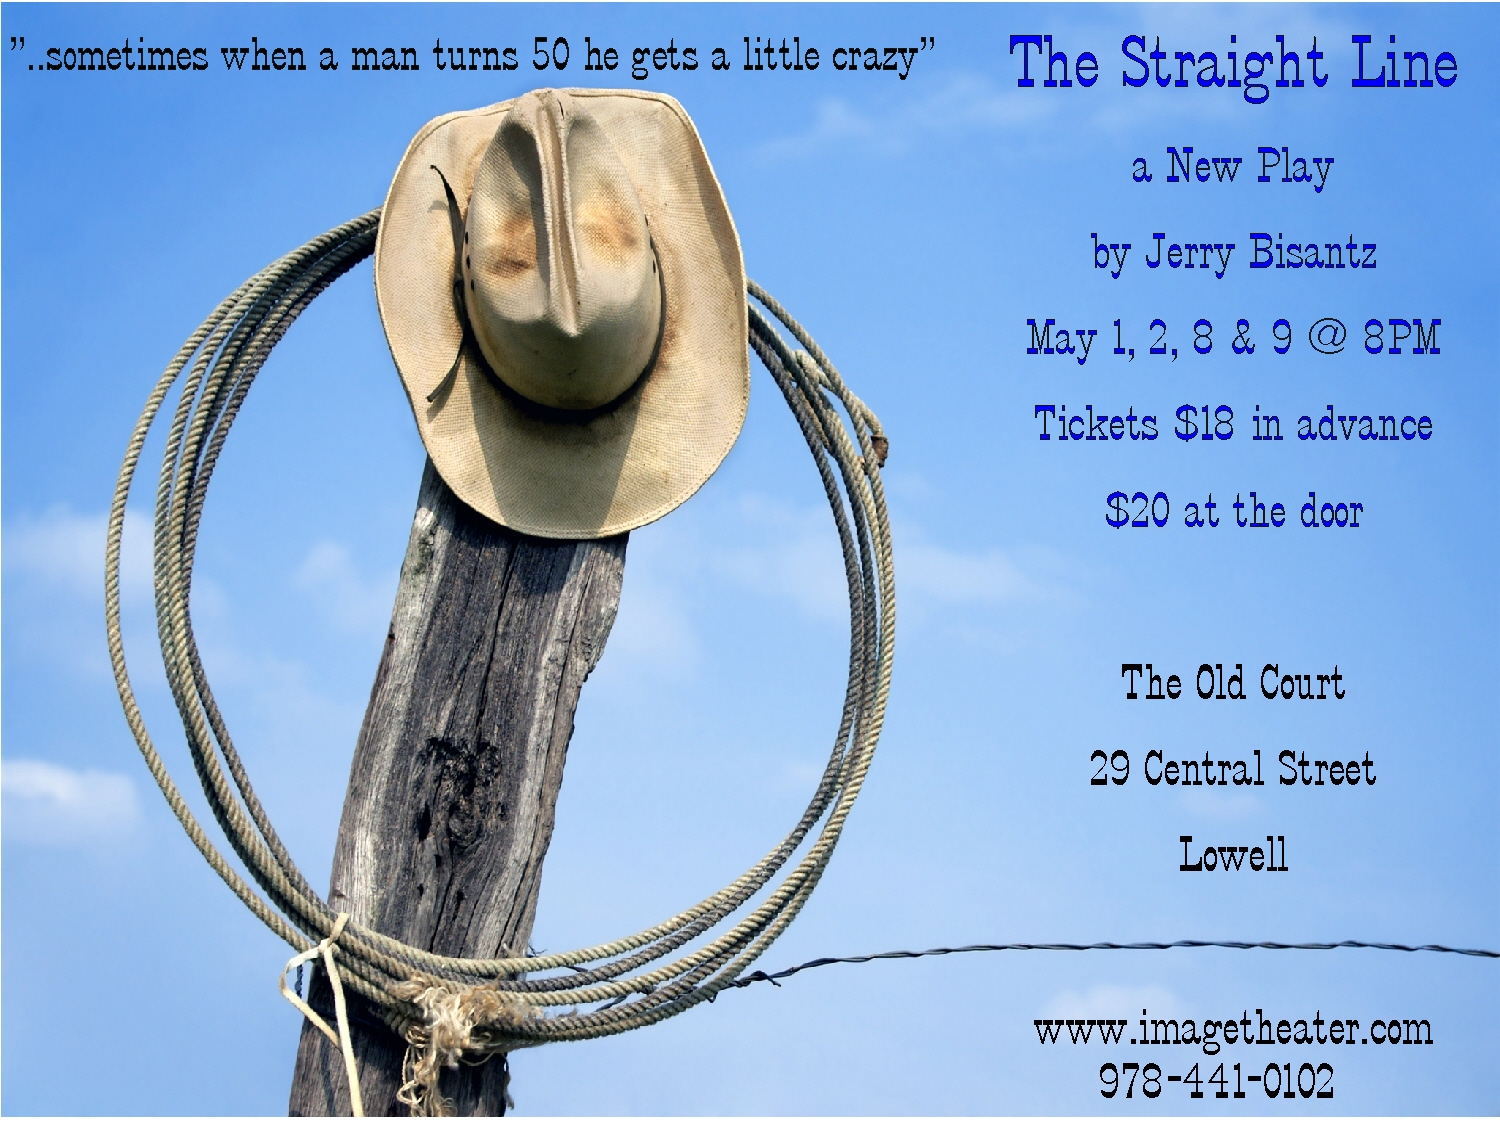 Straight Line a new play by Jerry Bi